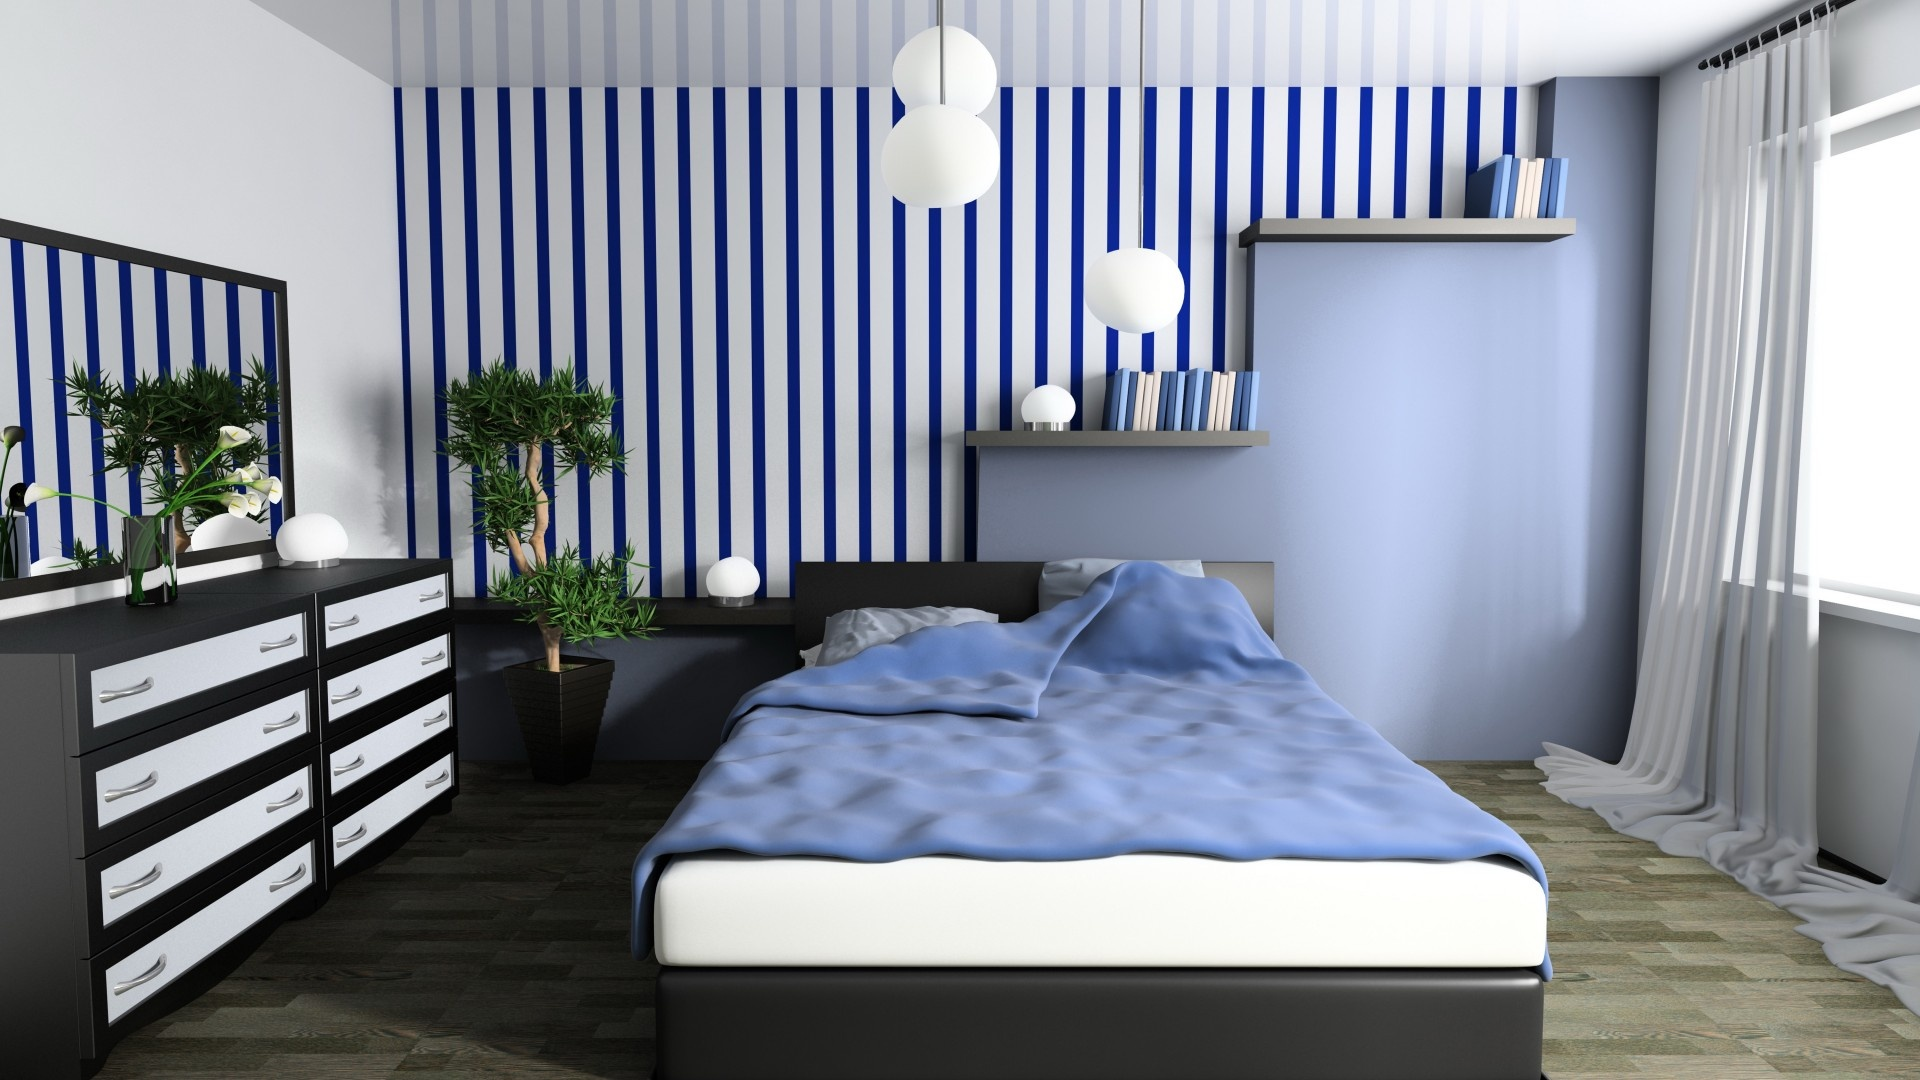 Outstanding Blue Bedroom Interior Design 1920 x 1080 · 440 kB · jpeg